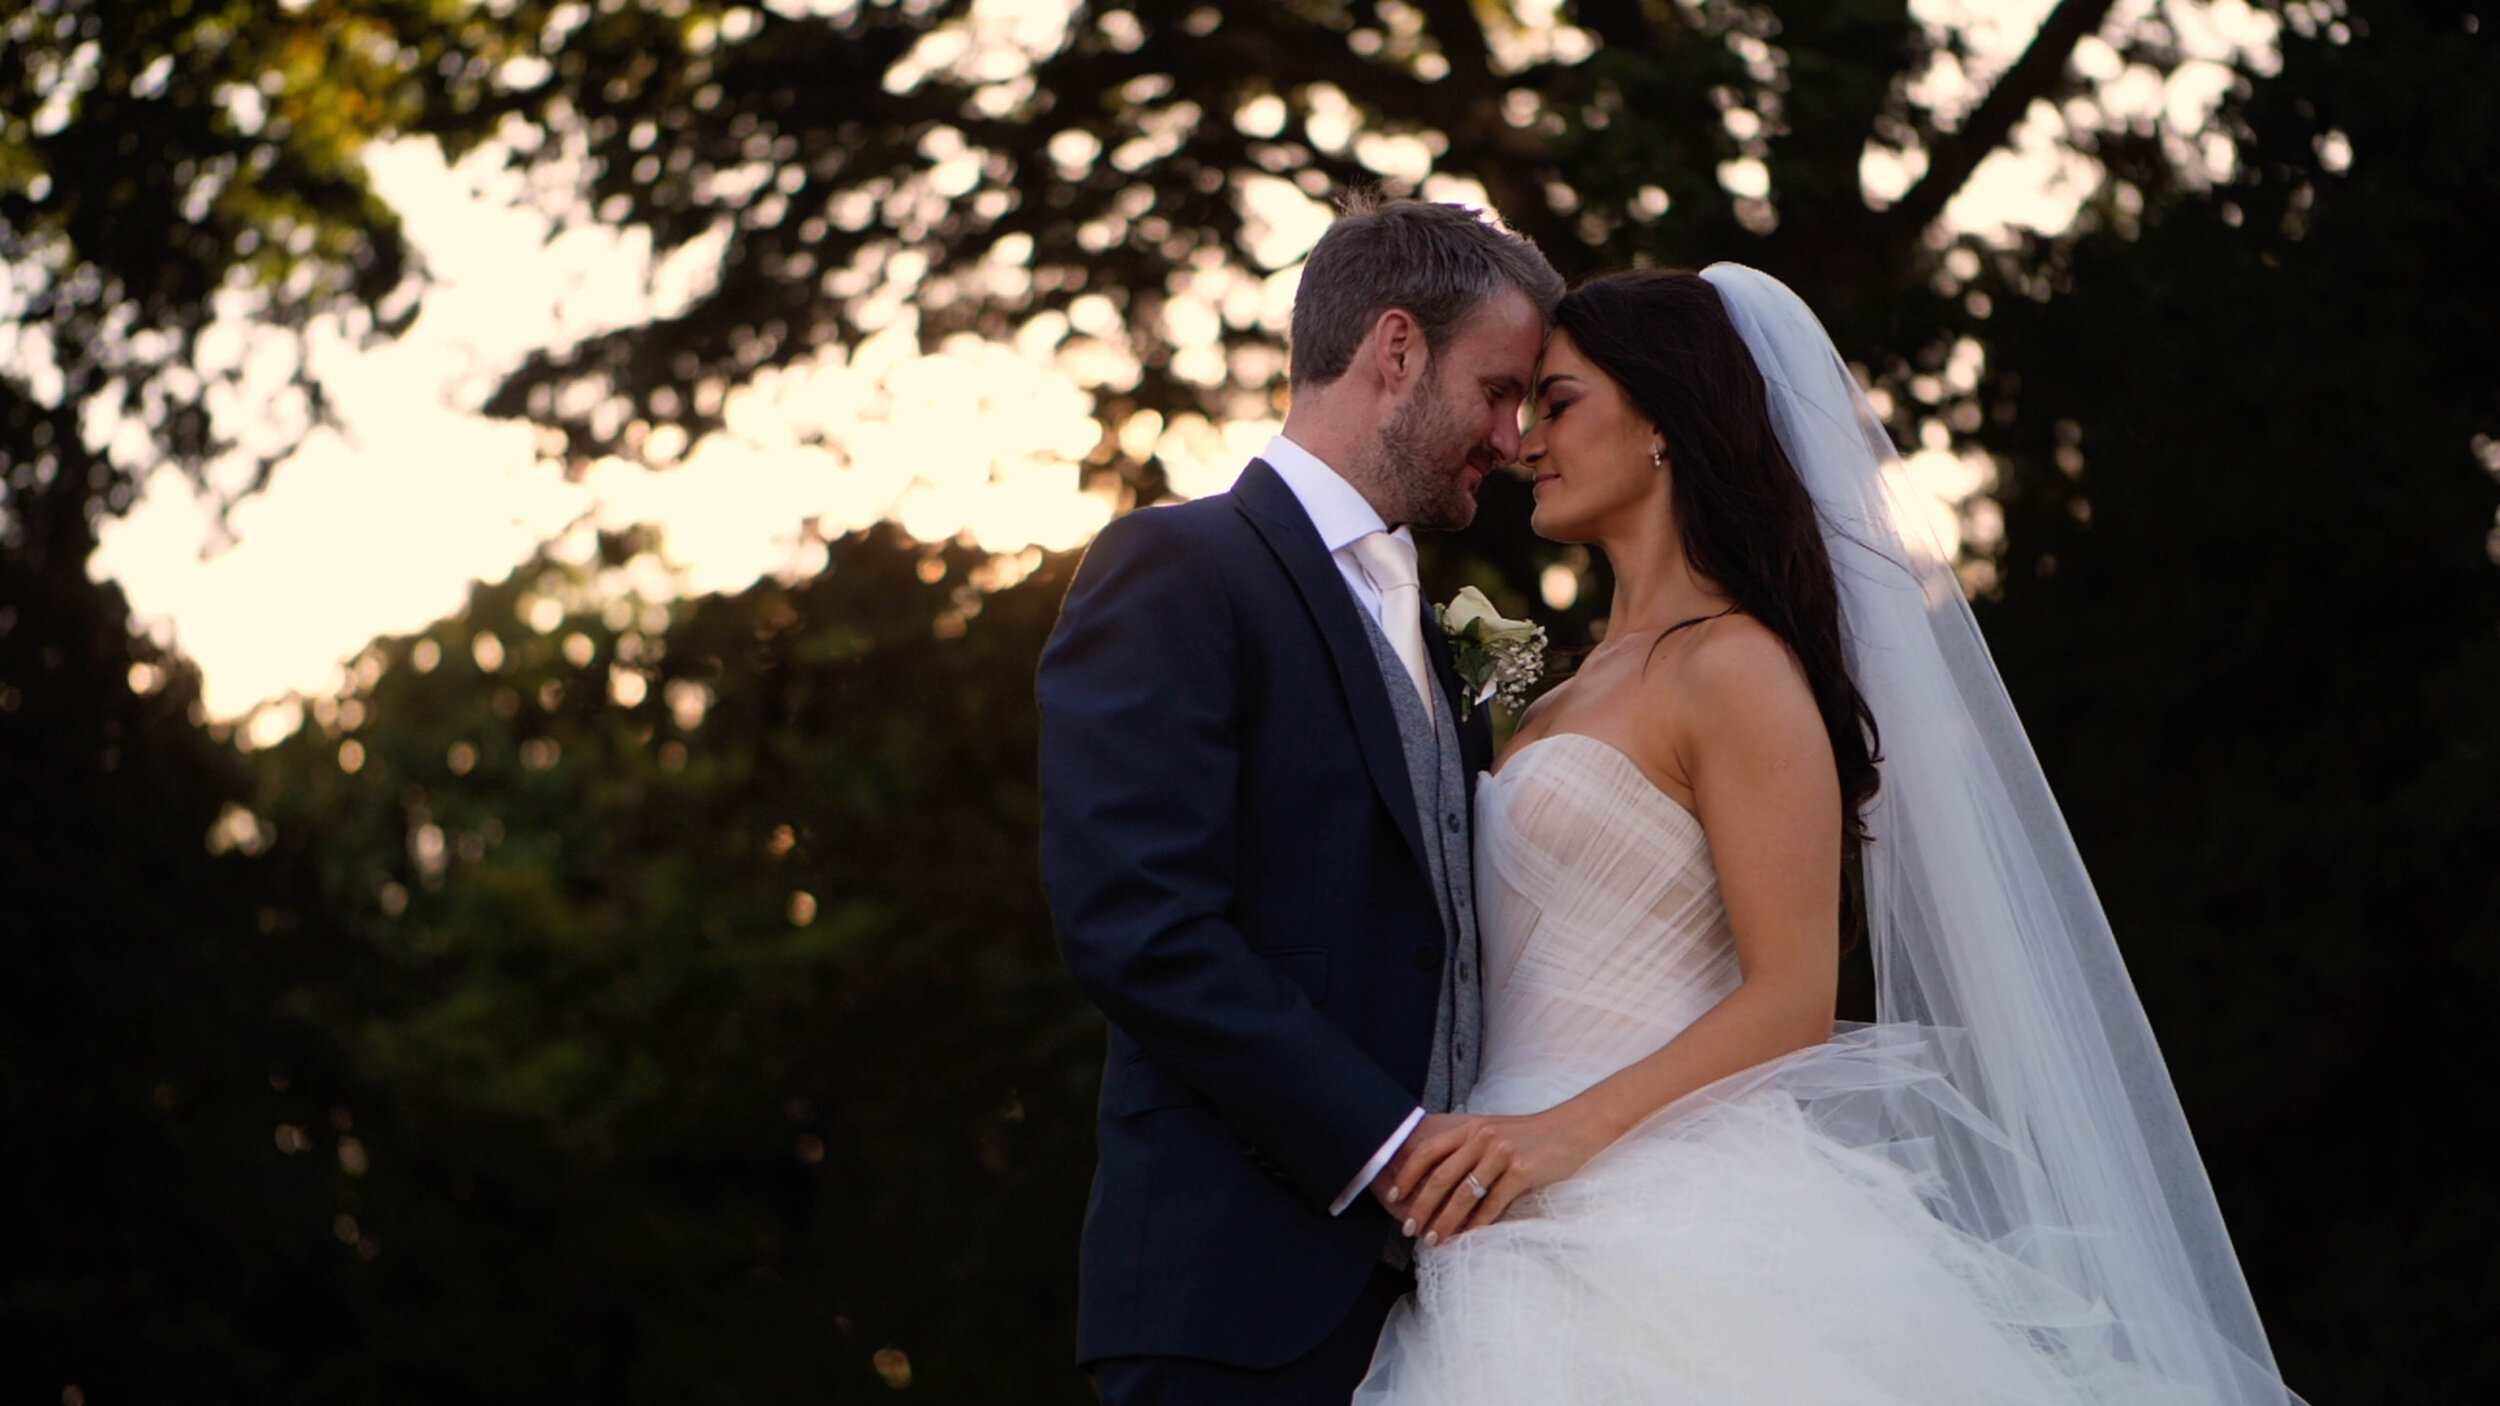 Matt + Helen share a moment in front of the sunset whilst shaded by a forest of trees at Rookery Hall.